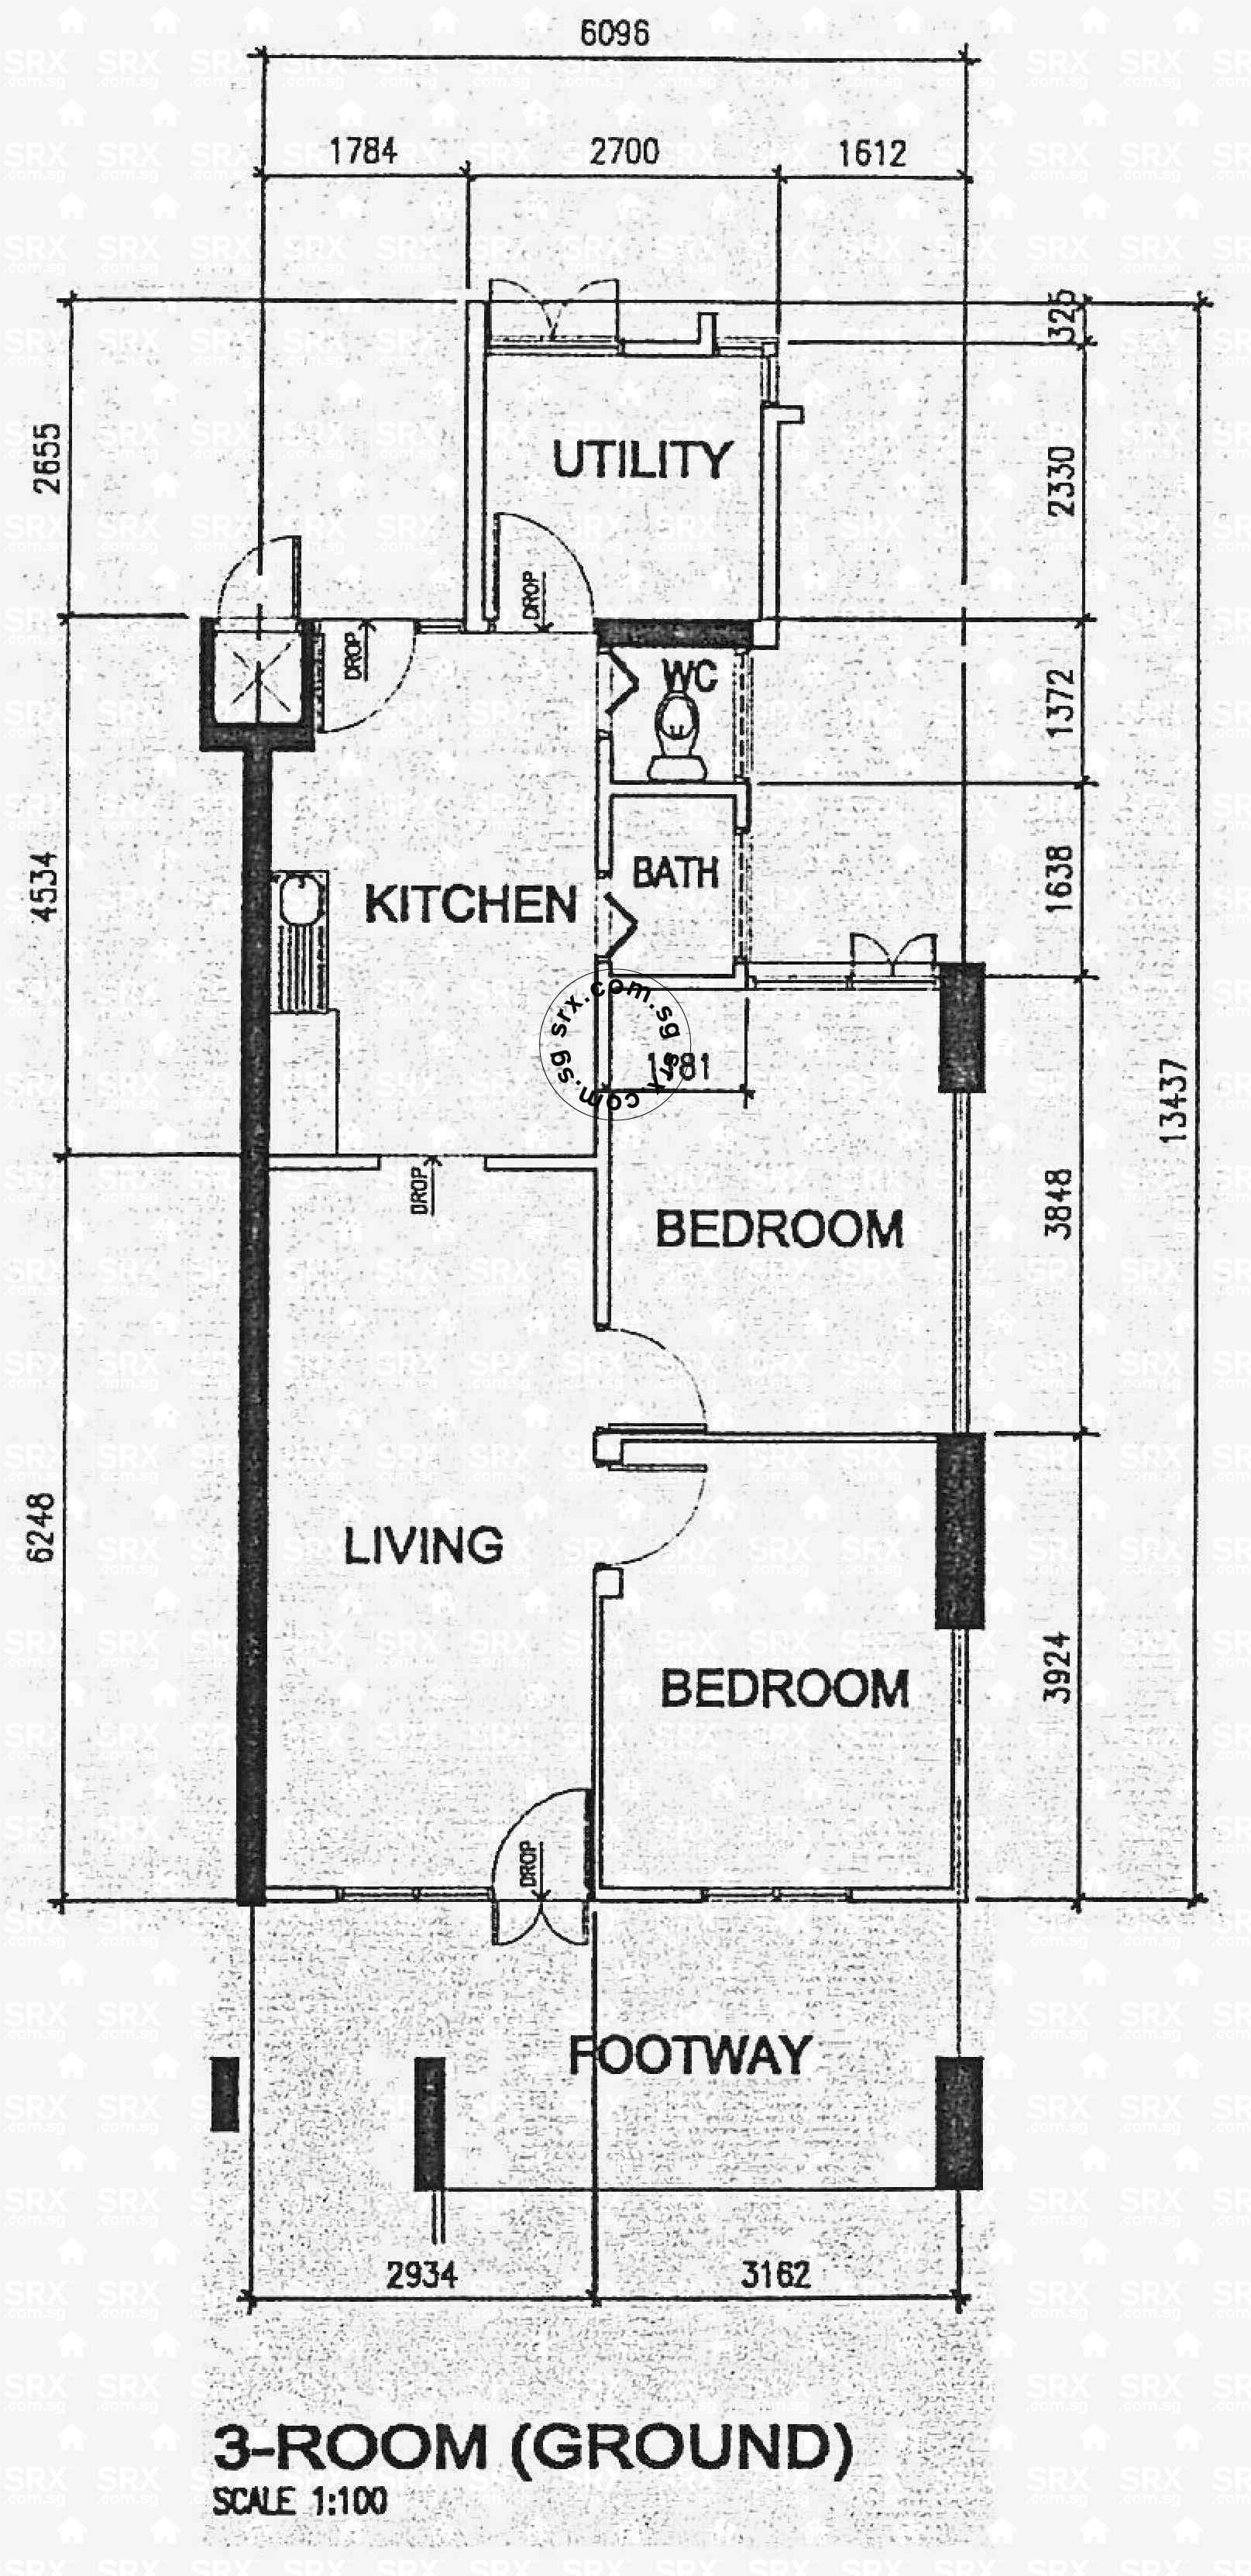 Boon Units Refrigeration Wiring Diagrams Schematics Type 181 Diagram Floor Plans For Lay Place Hdb Details Srx Property Rh Com Sg At